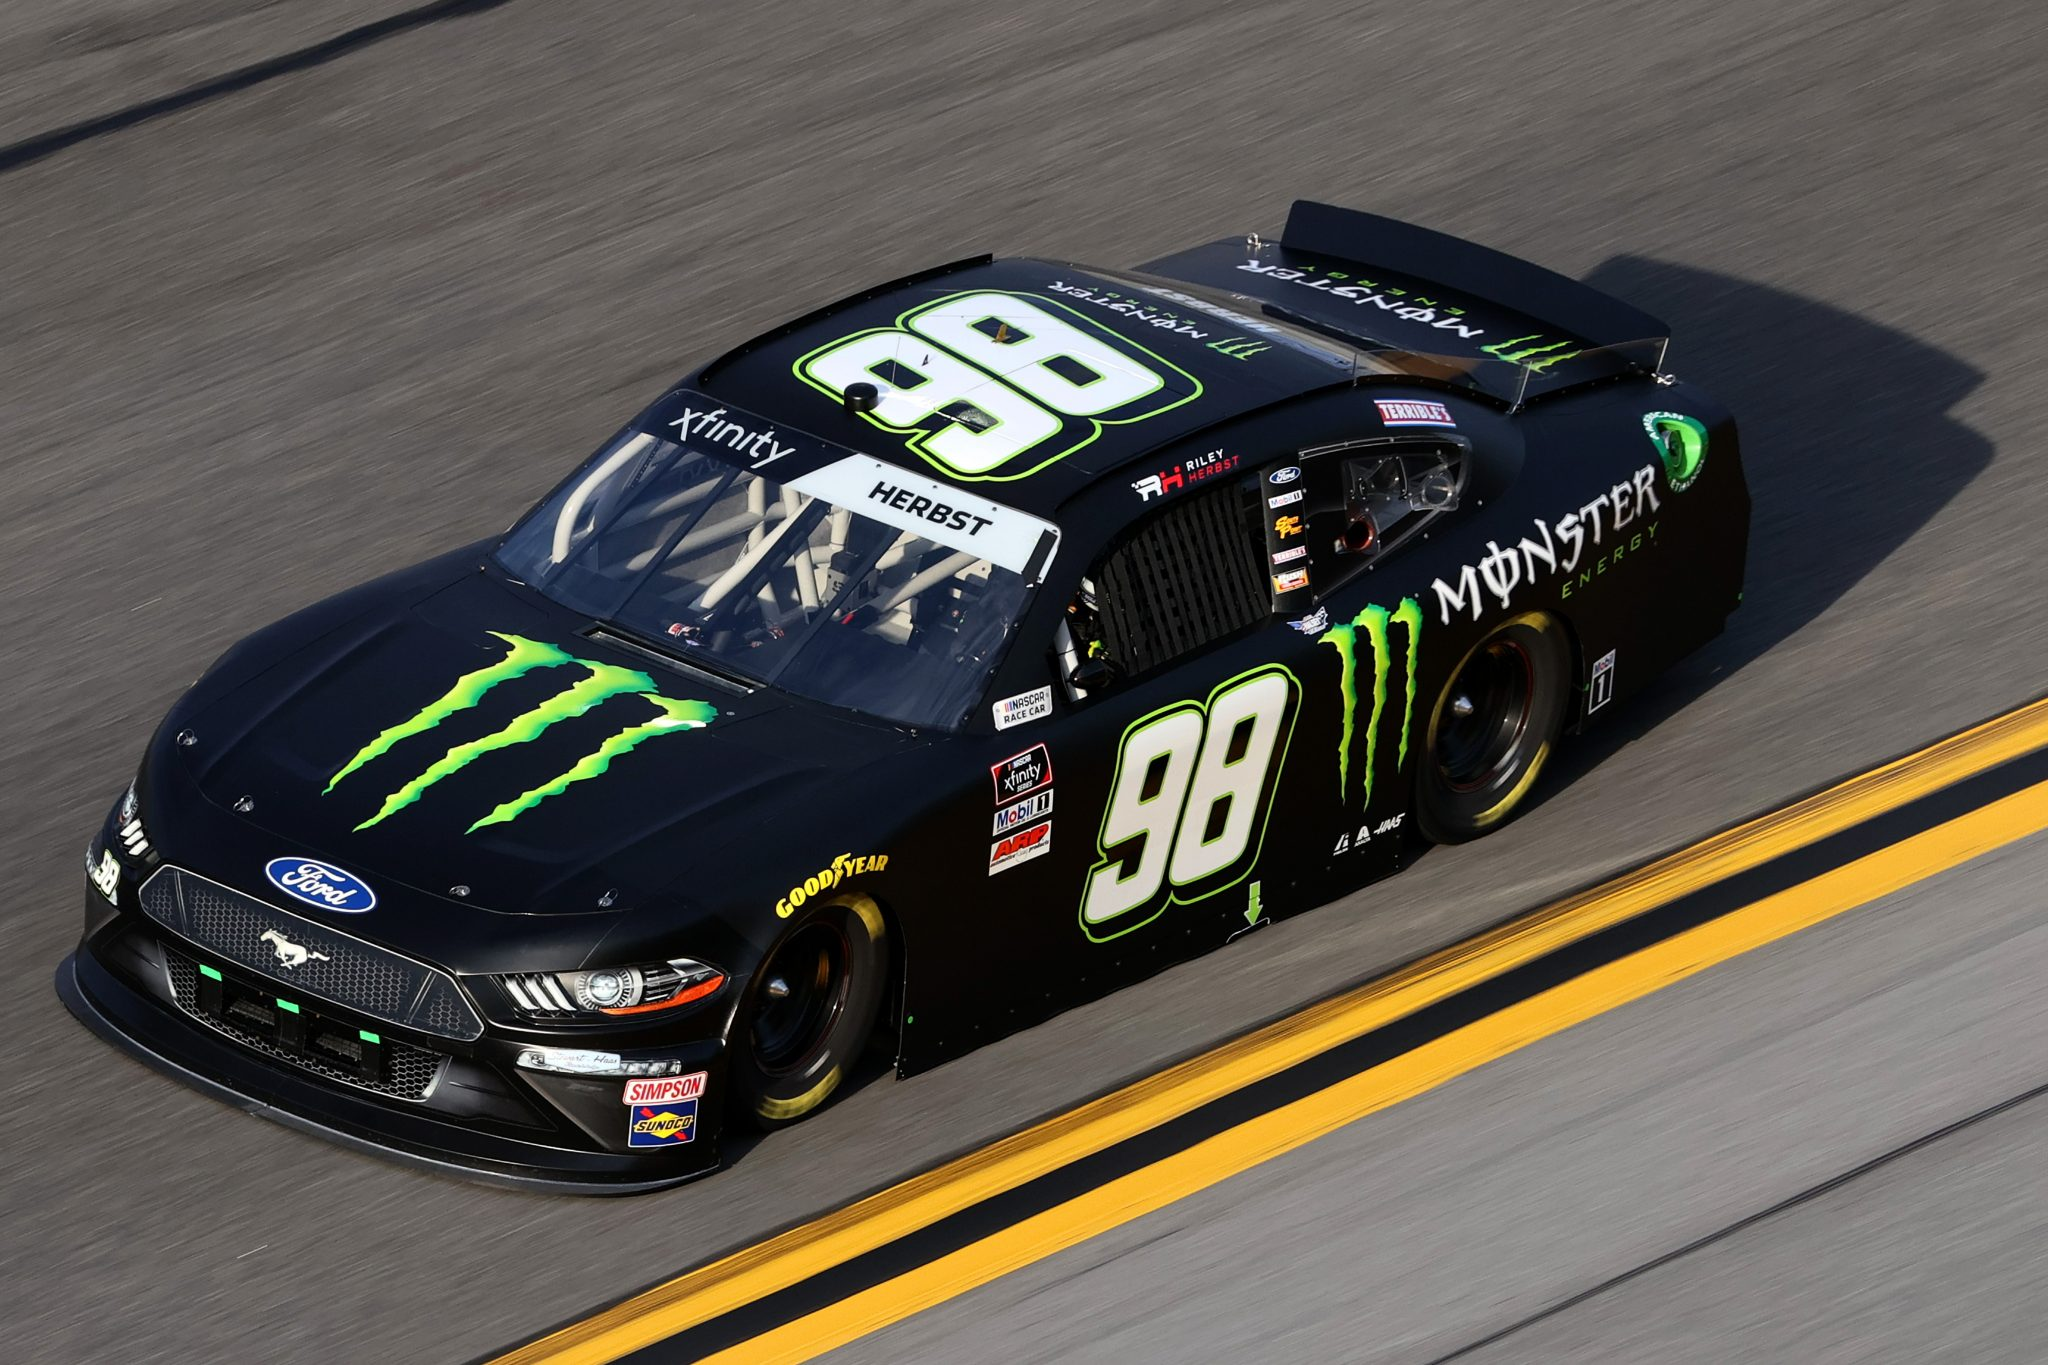 DAYTONA BEACH, FLORIDA - FEBRUARY 12: Riley Herbst, driver of the #98 Monster Energy Ford, practices for the NASCAR Xfinity Series Beef. It's What's For Dinner. 300 at Daytona International Speedway on February 12, 2021 in Daytona Beach, Florida. (Photo by James Gilbert/Getty Images) | Getty Images